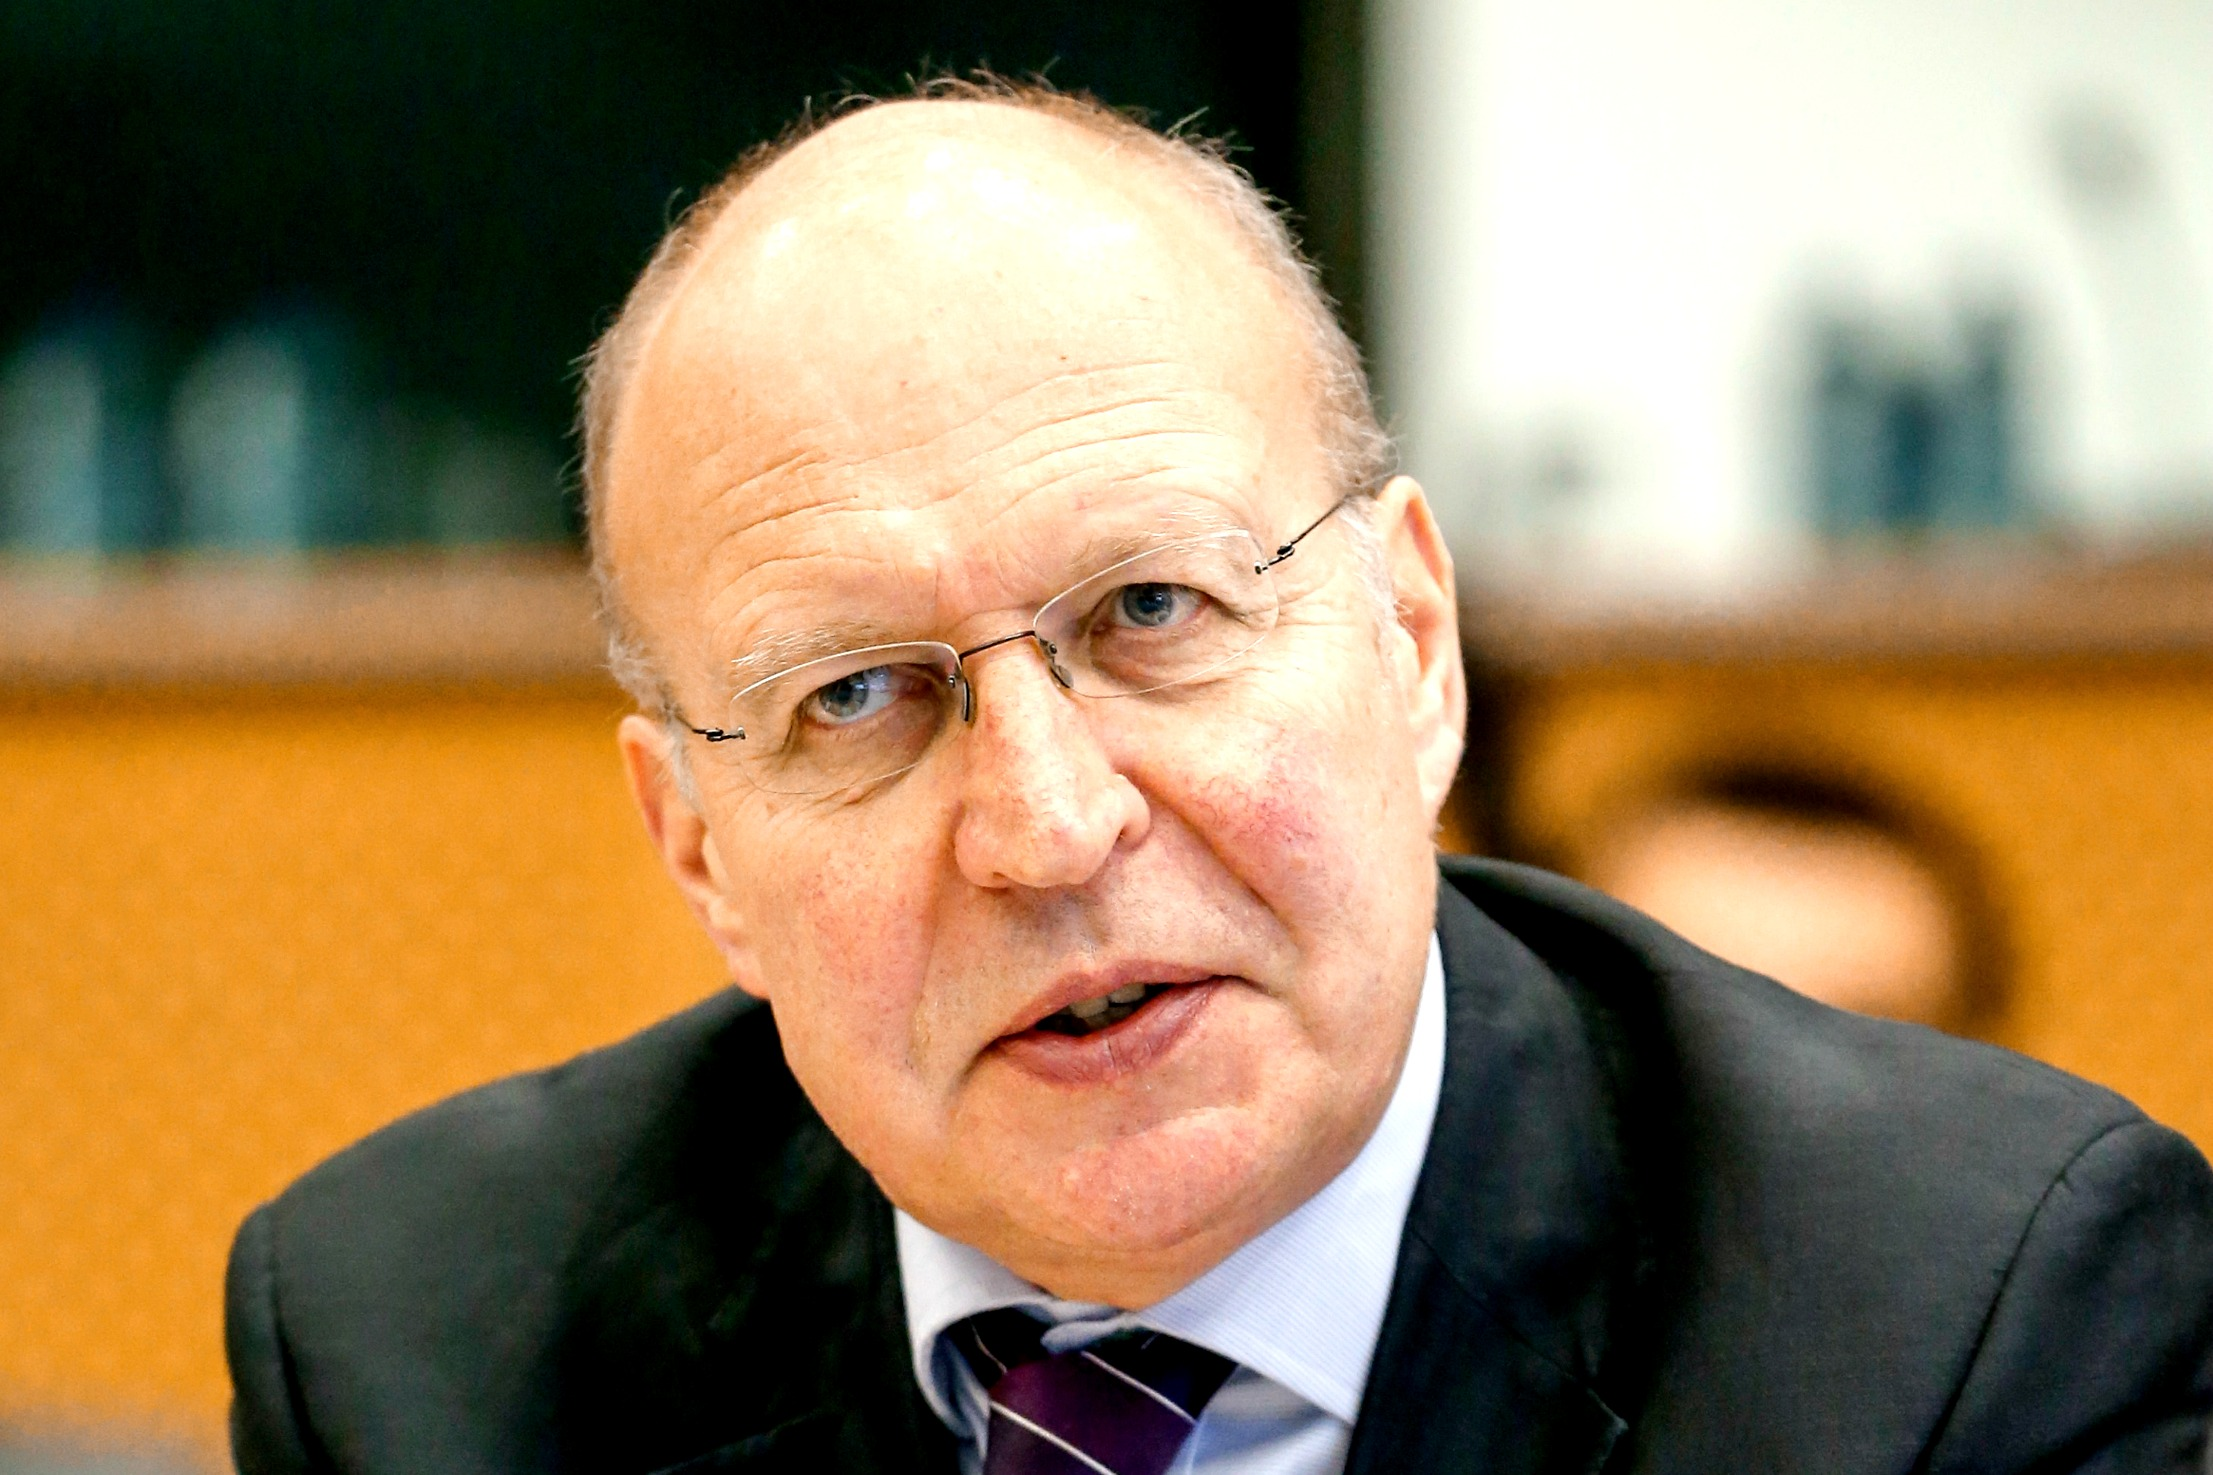 Andrew Duff, former MEP and former president of the Union of European Federalists (UEF) [European Parliament]